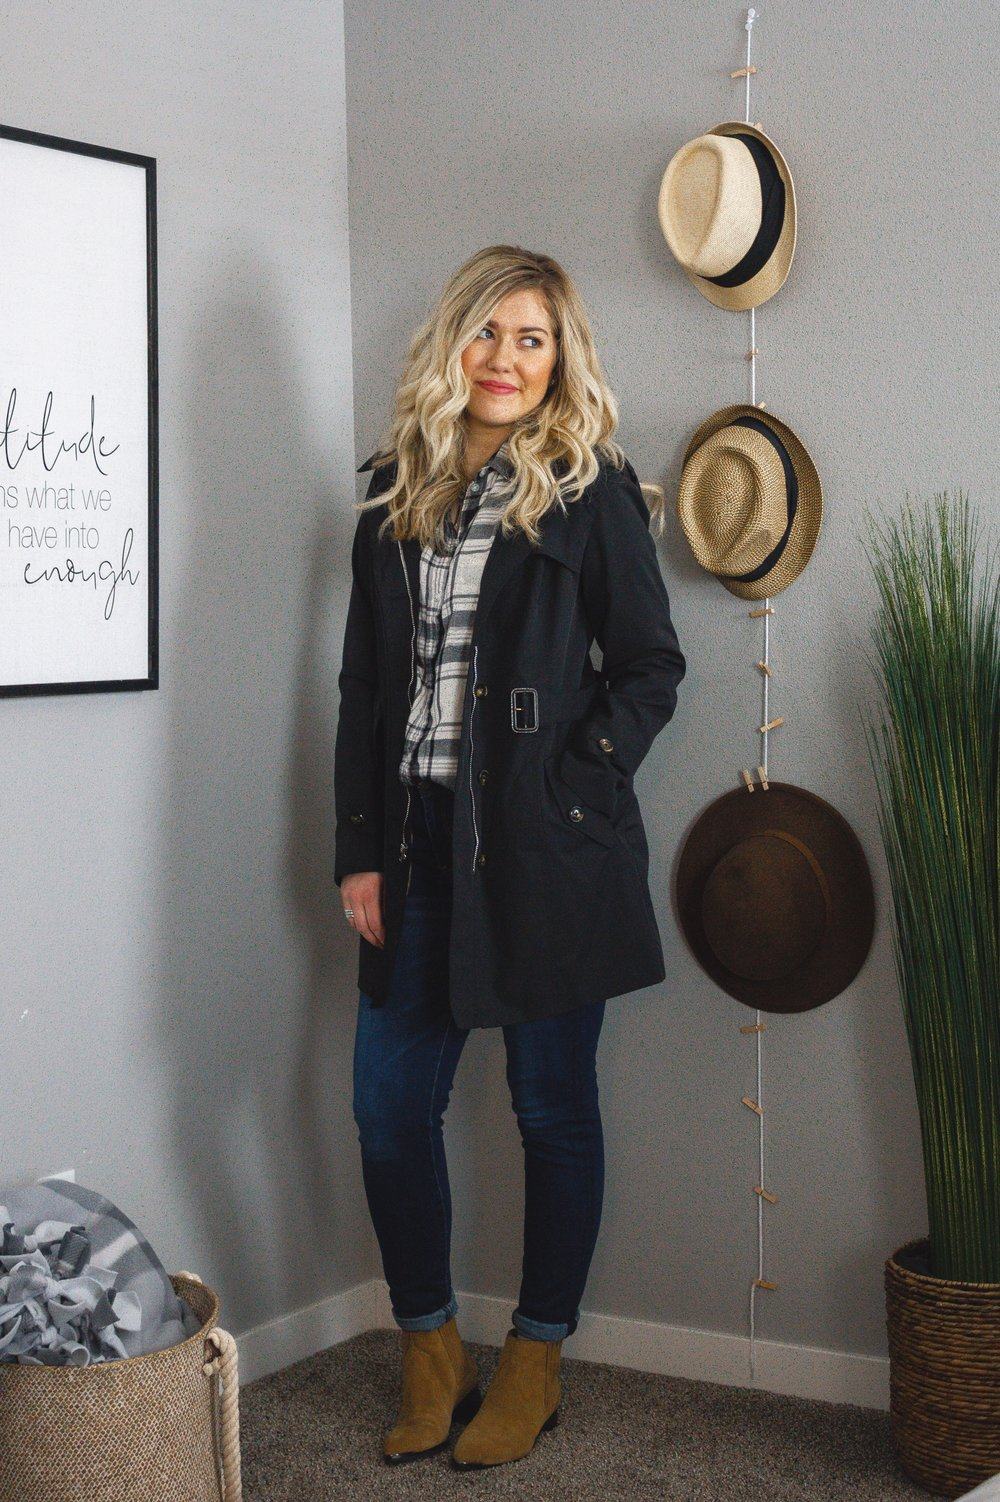 92f6cd9c91 3 Ways to Style an Oversized Flannel + Jeans Outfit — Adrianna Bohrer